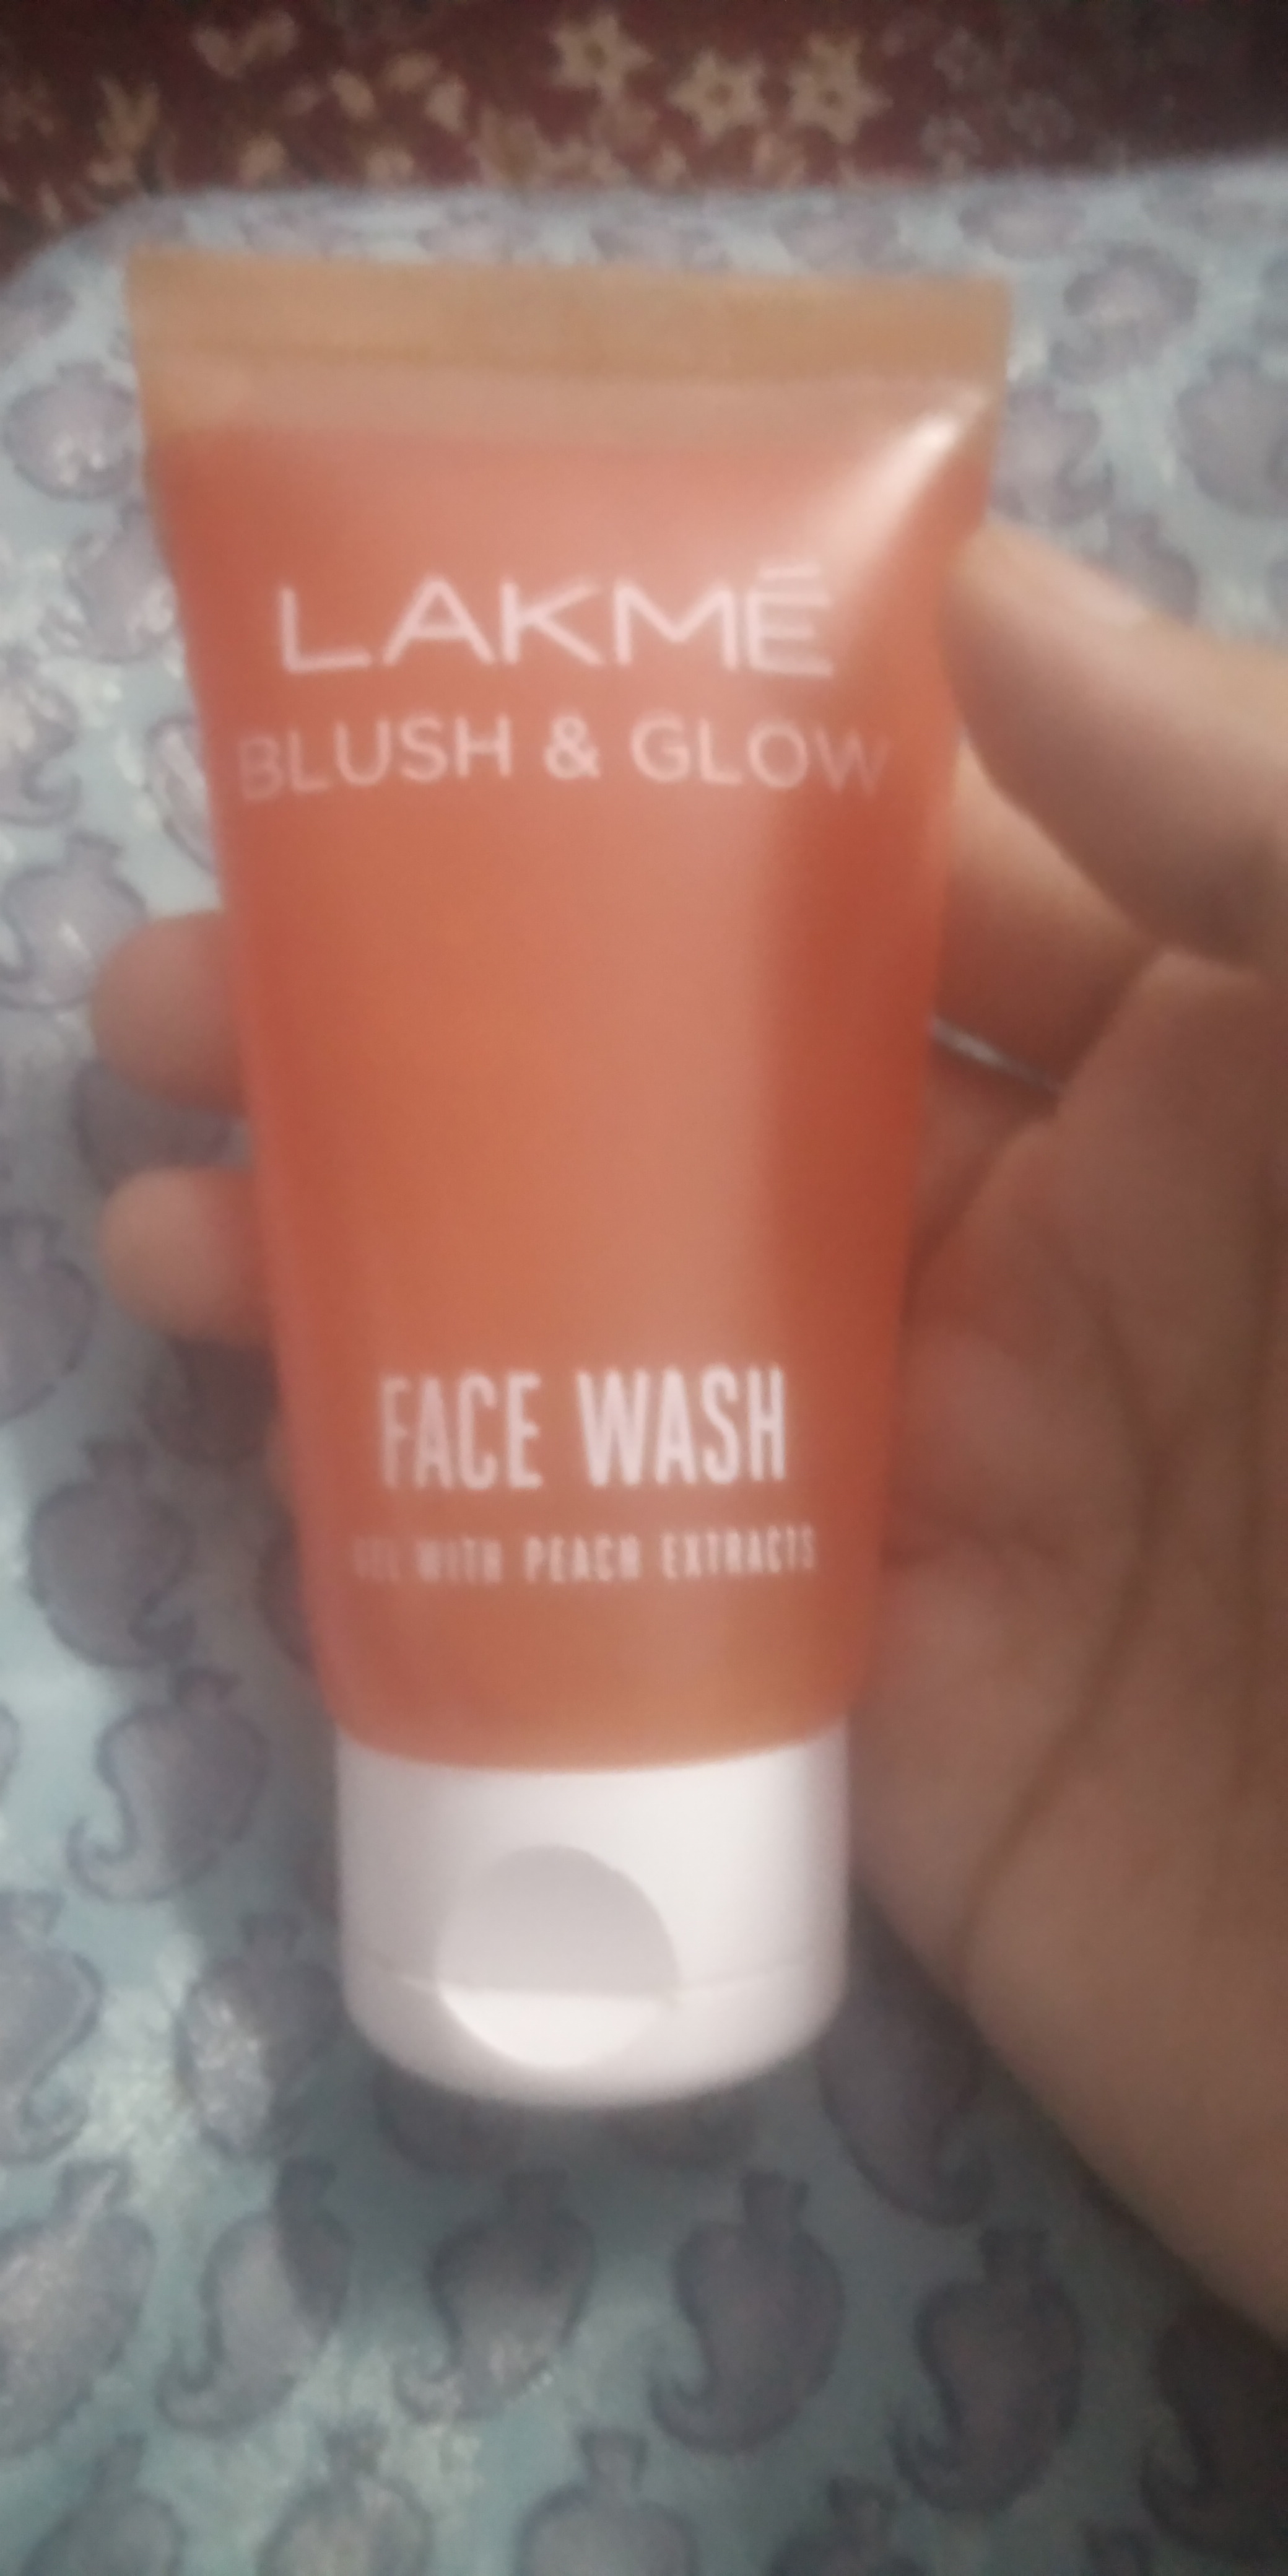 Lakme Blush & Glow Peach Gel Face Wash-Fruity scent face wash-By know.your.vanity-3